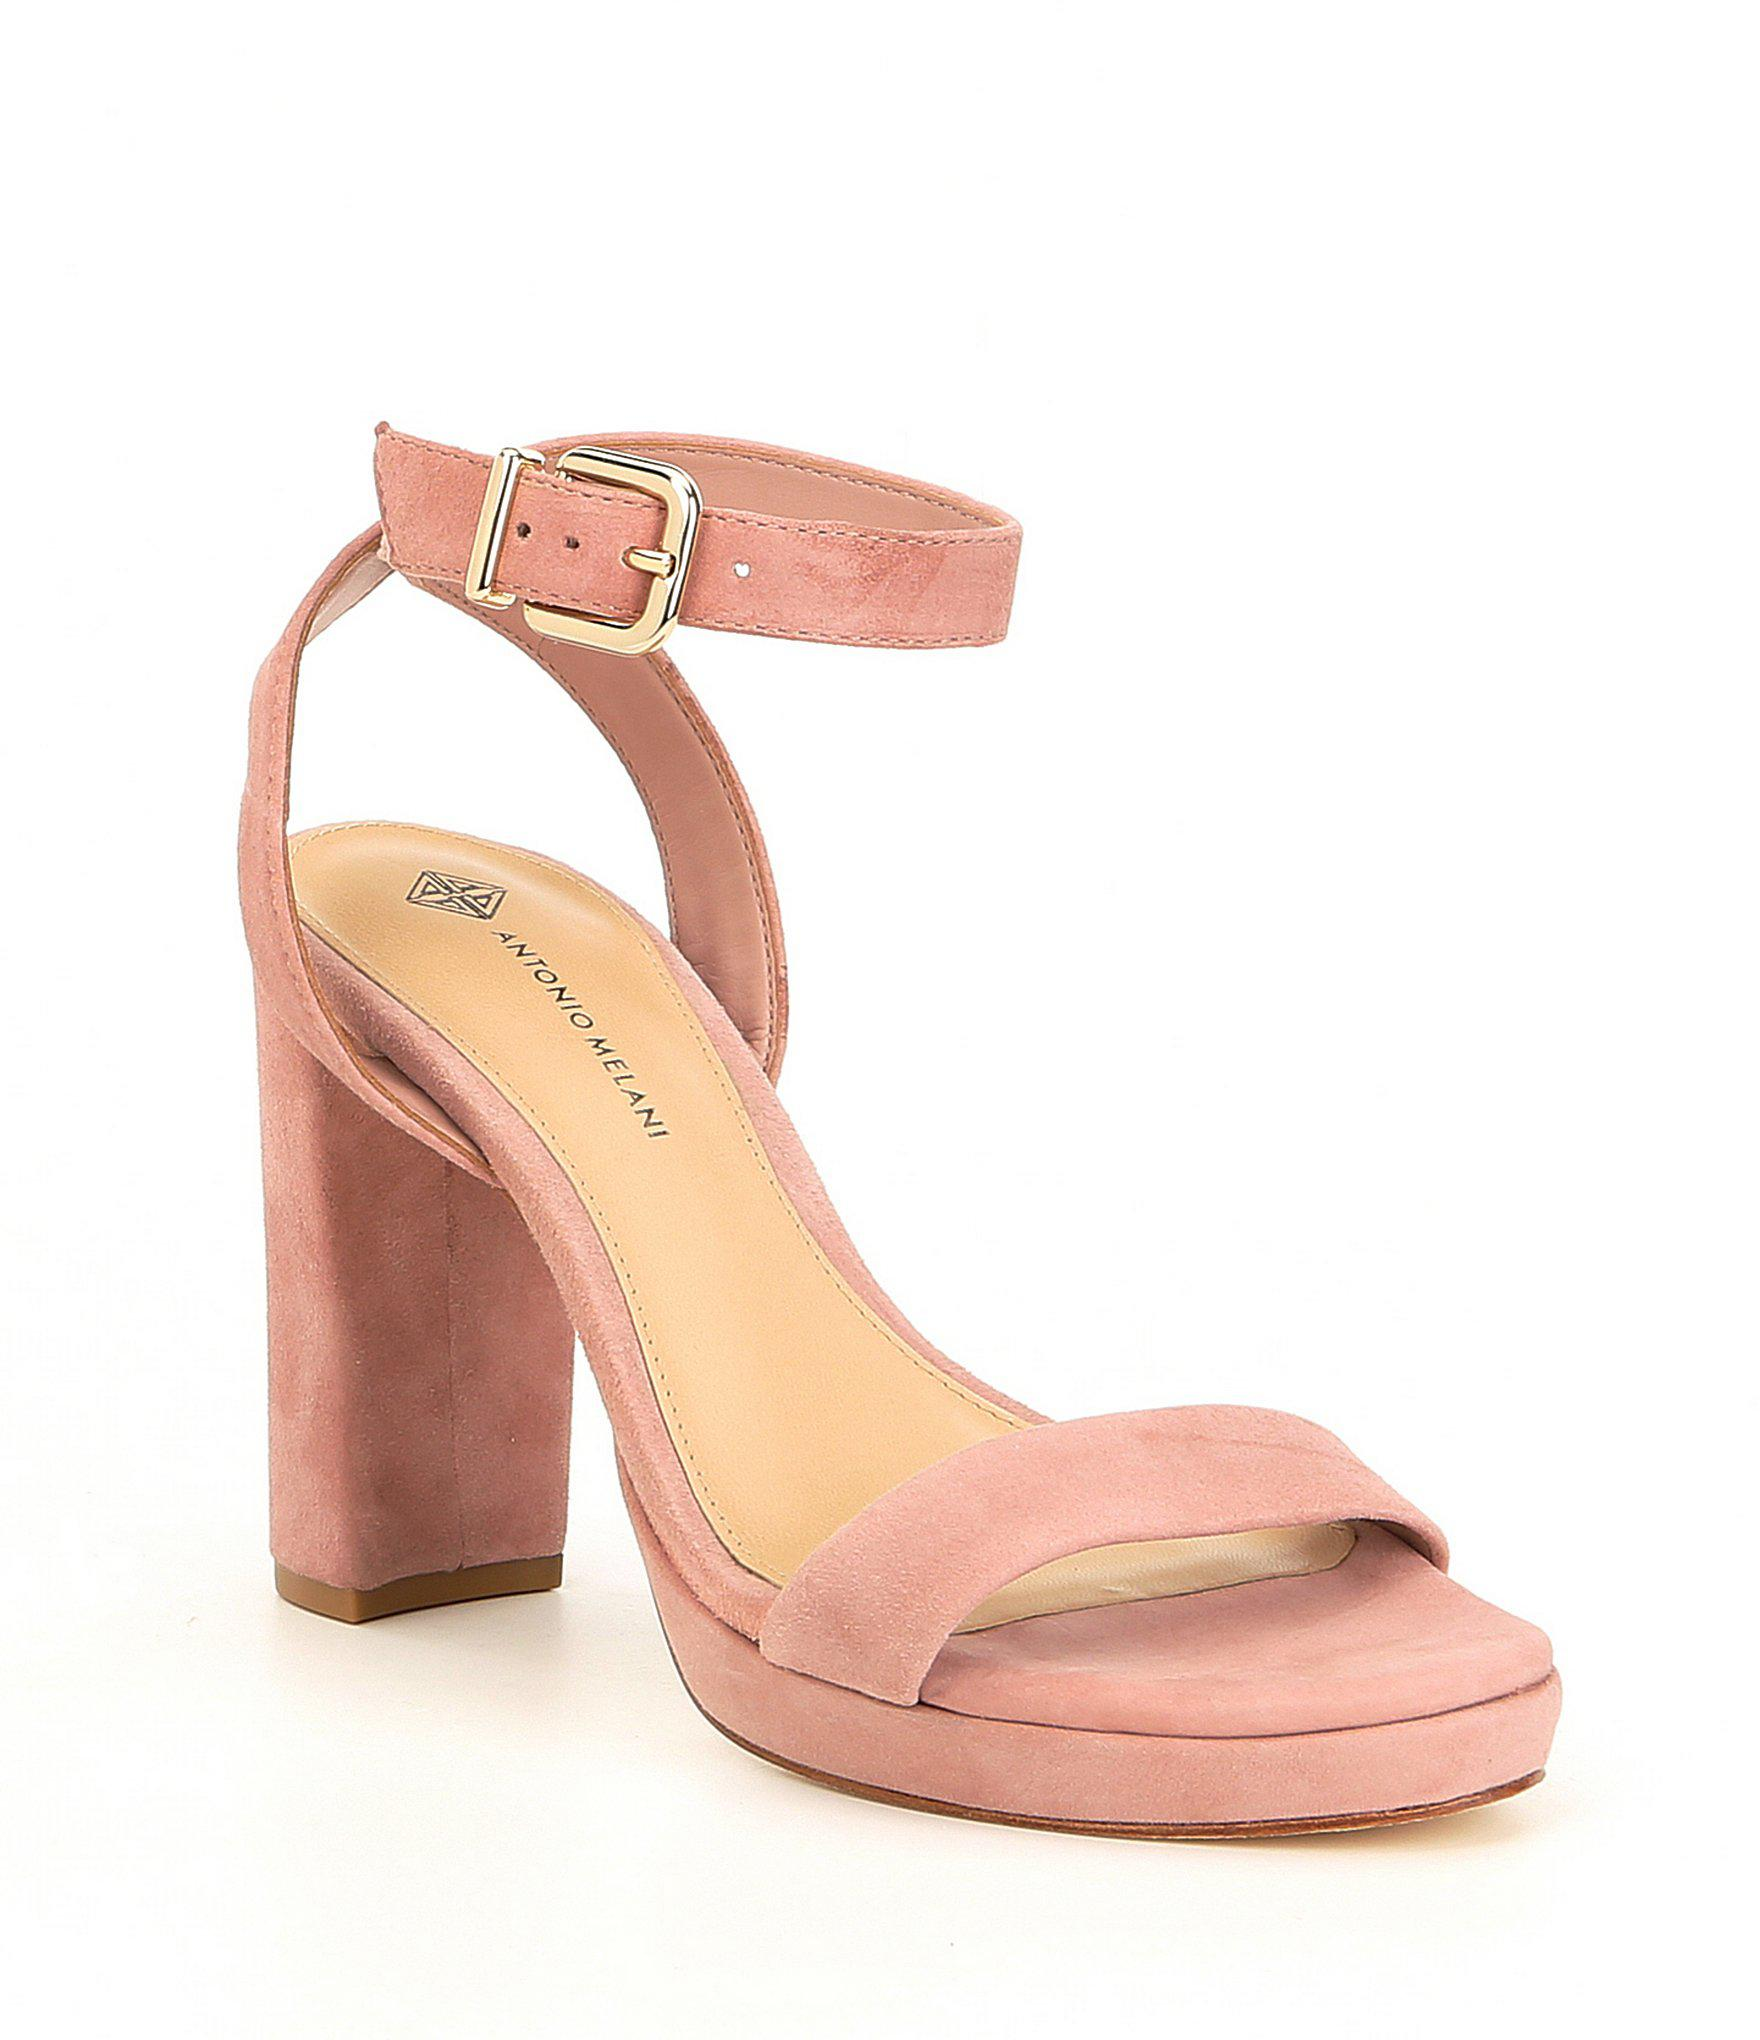 244672dc51a Lyst - Antonio Melani Sarita Suede Platform Dress Sandals in Pink